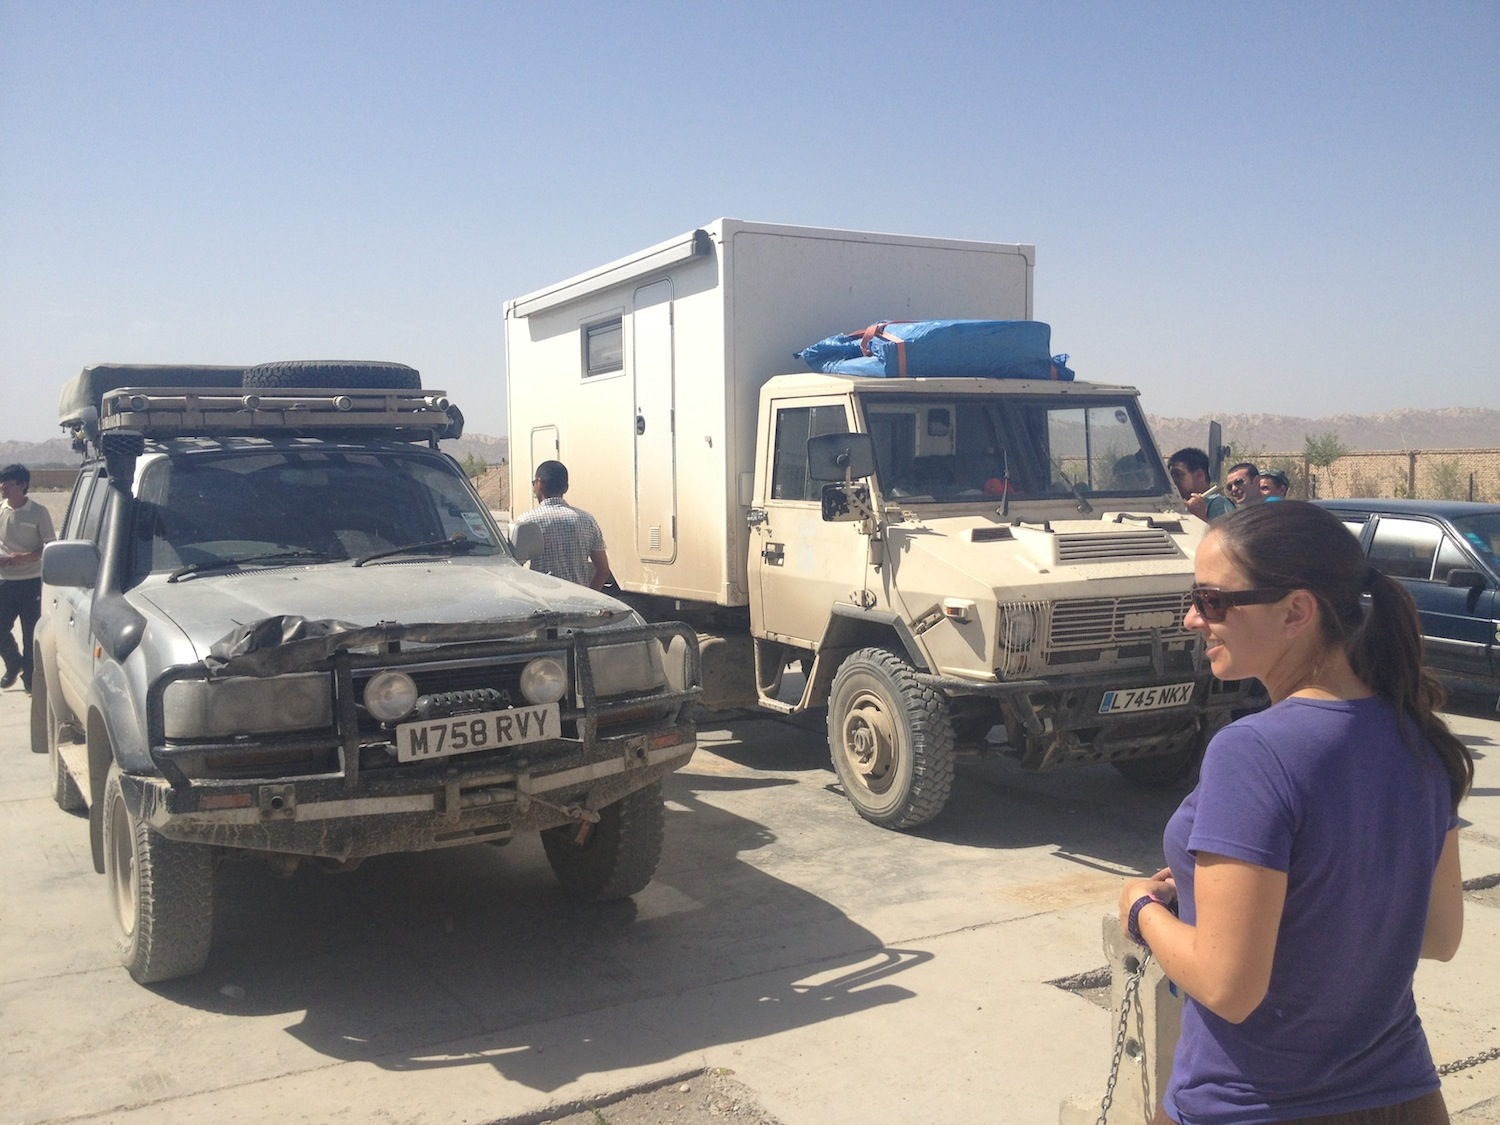 Boris & Ivor at Vehicle Inspection (Kashgar, China)